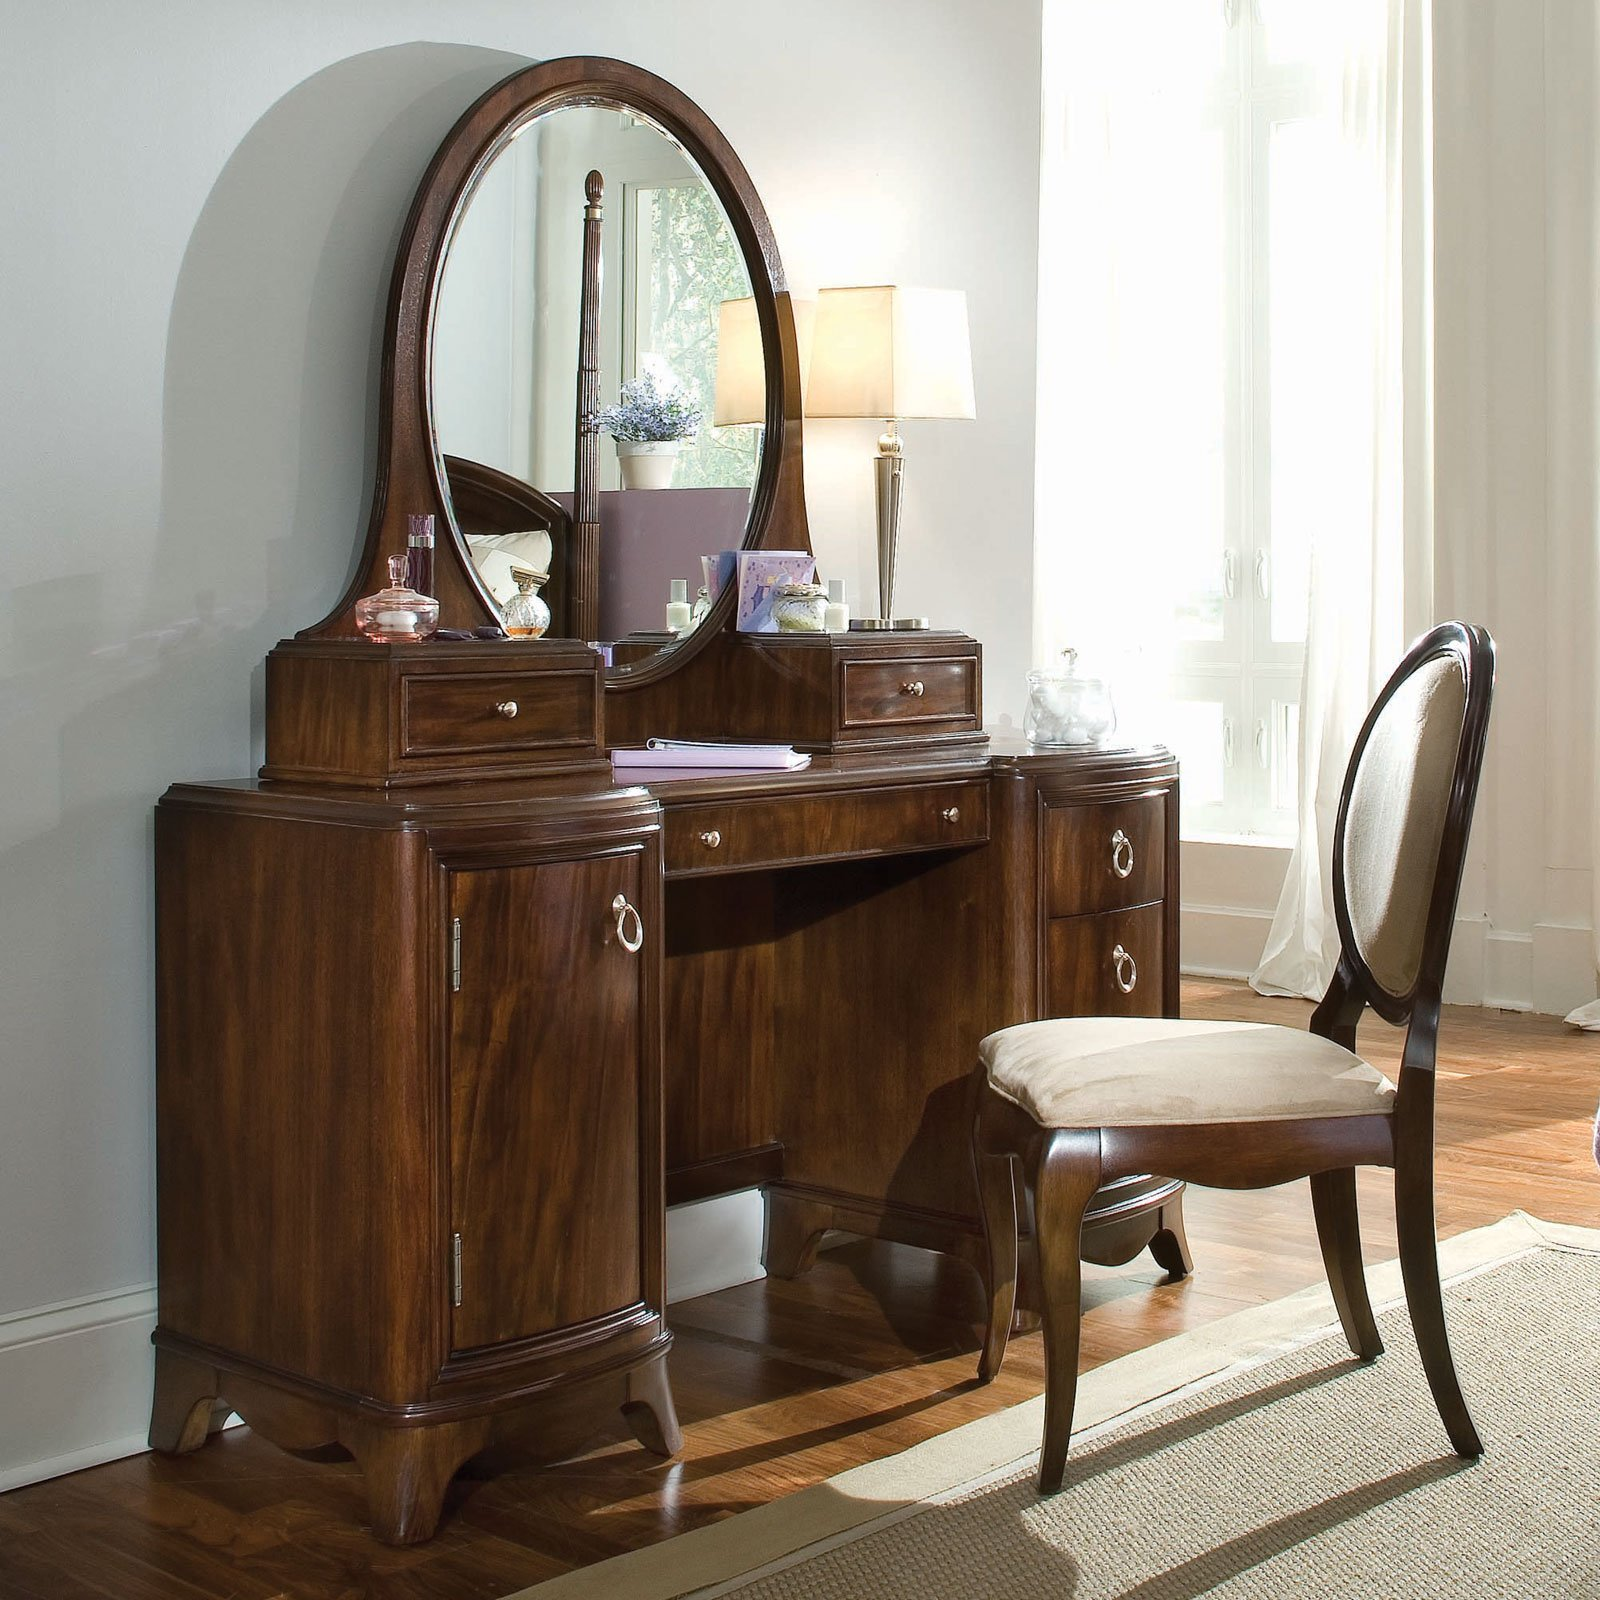 Luxury Bedroom Vanity | Future Dream House Design